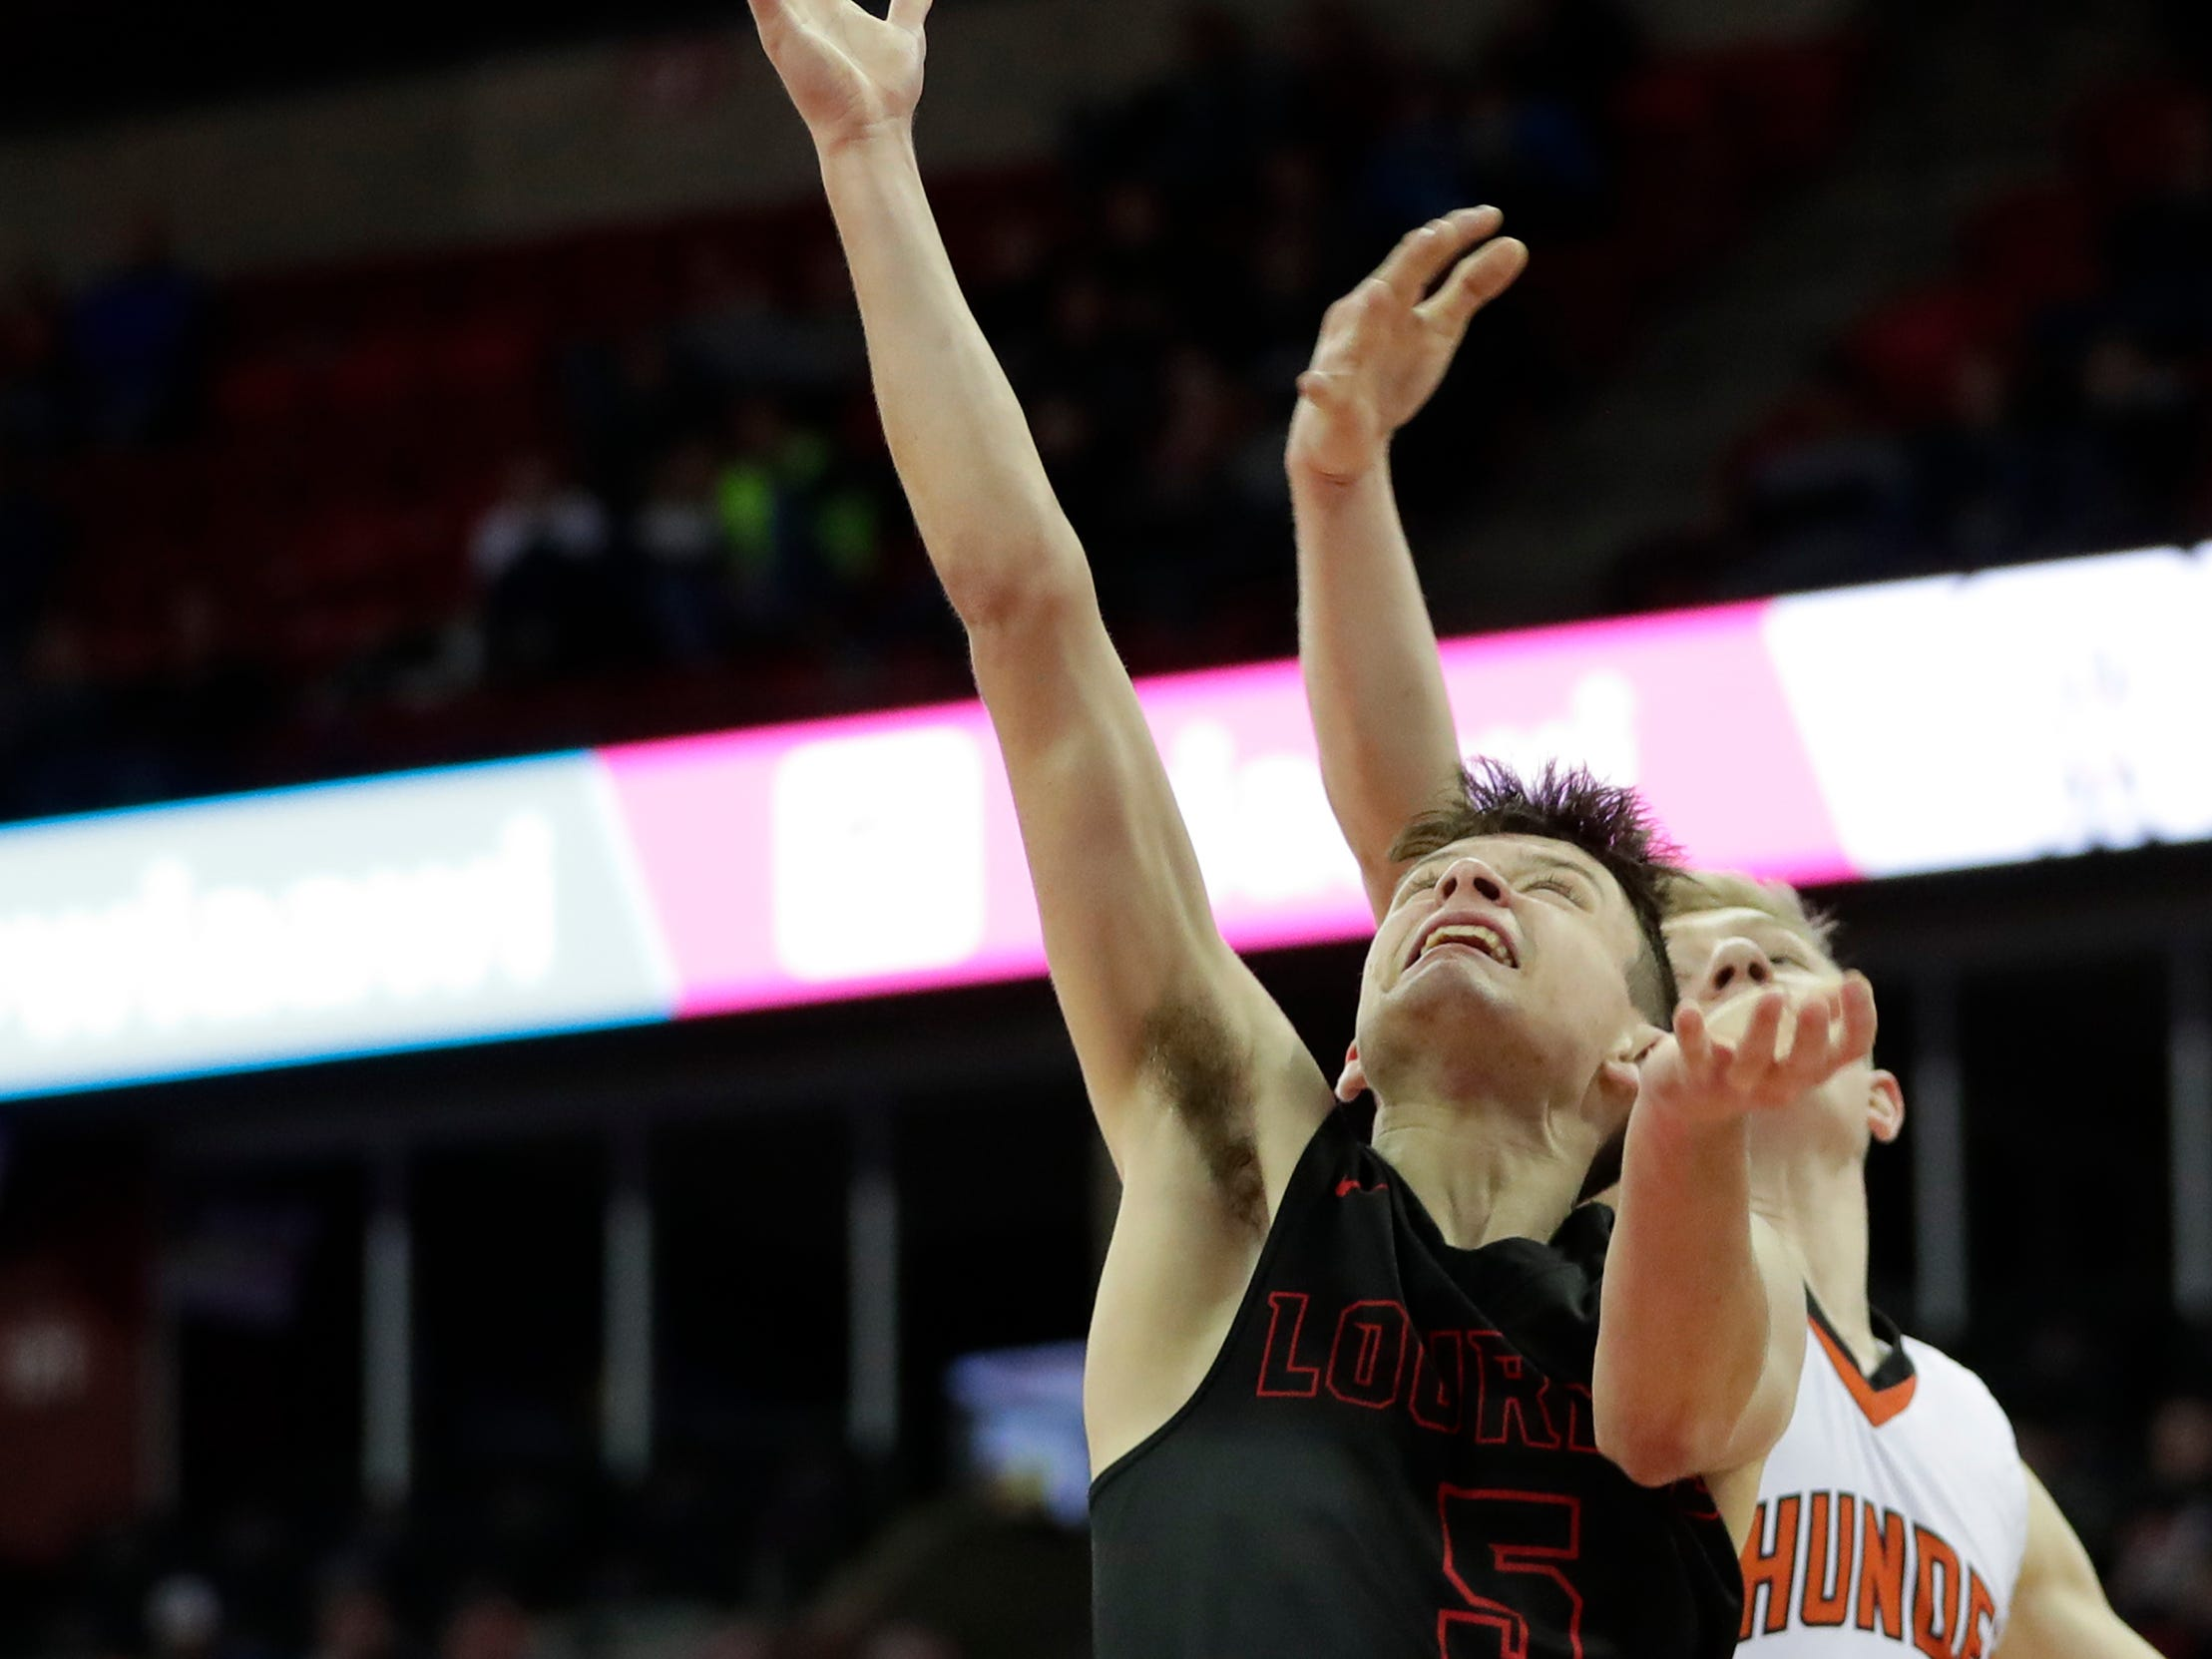 Lourdes Academy's Jack McKellips (5) shoots a layup against Osseo-Fairchild High School's Alex Watenphul (12) during their WIAA Division 4 boys basketball state semifinal at the Kohl Center Thursday, March 14, 2019, in Madison, Wis.